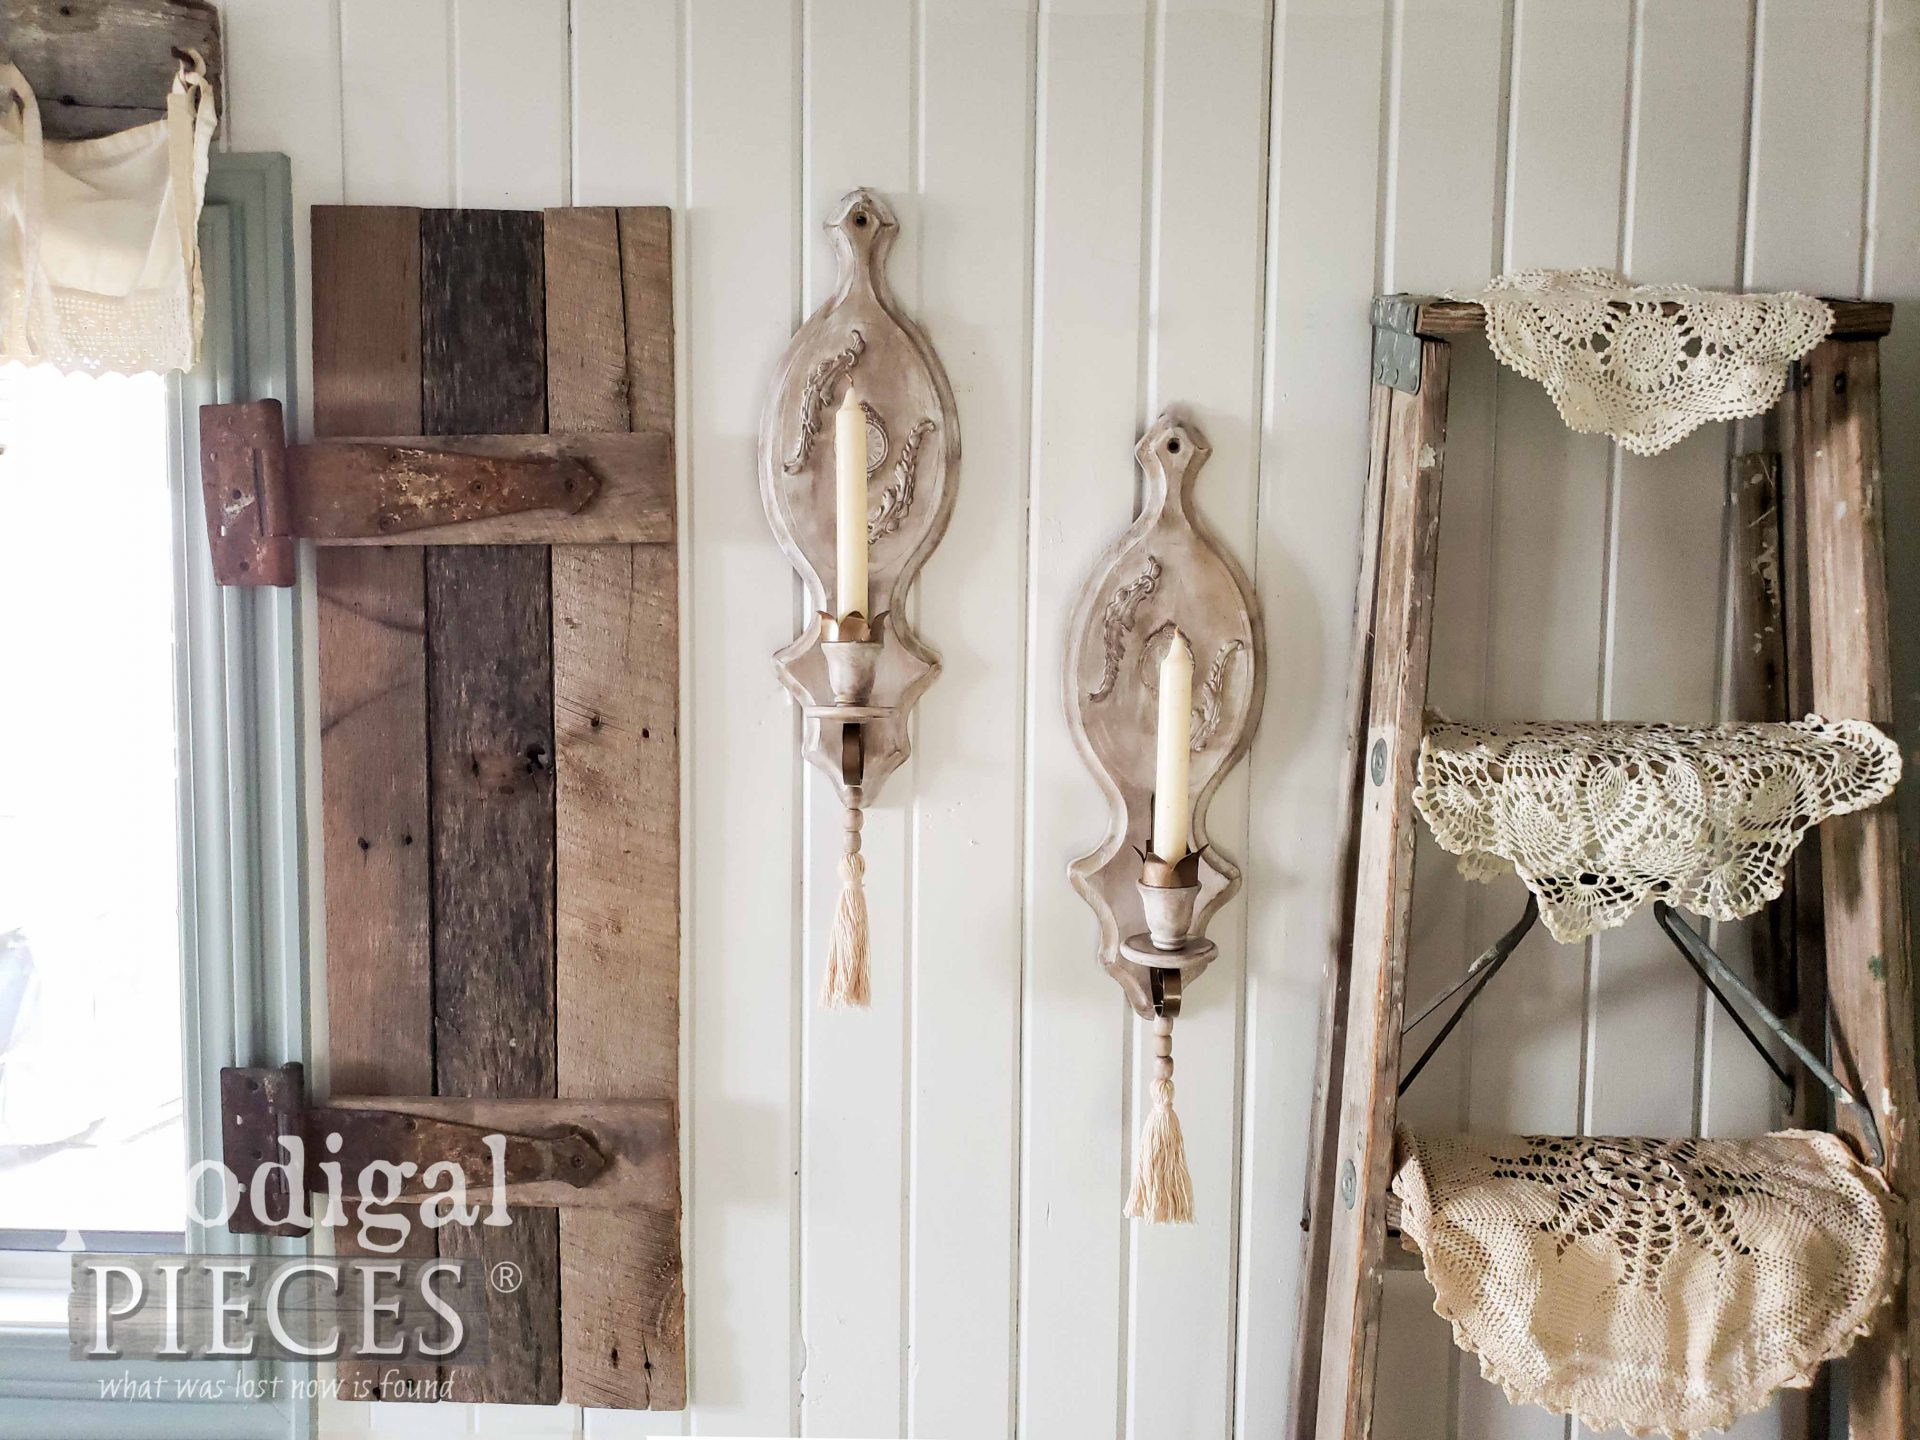 Pair of Vintage Candle Sconces by Larissa of Prodigal Pieces | prodigalpieces.com #prodigalpieces #diy #home #homedecor #farmhouse